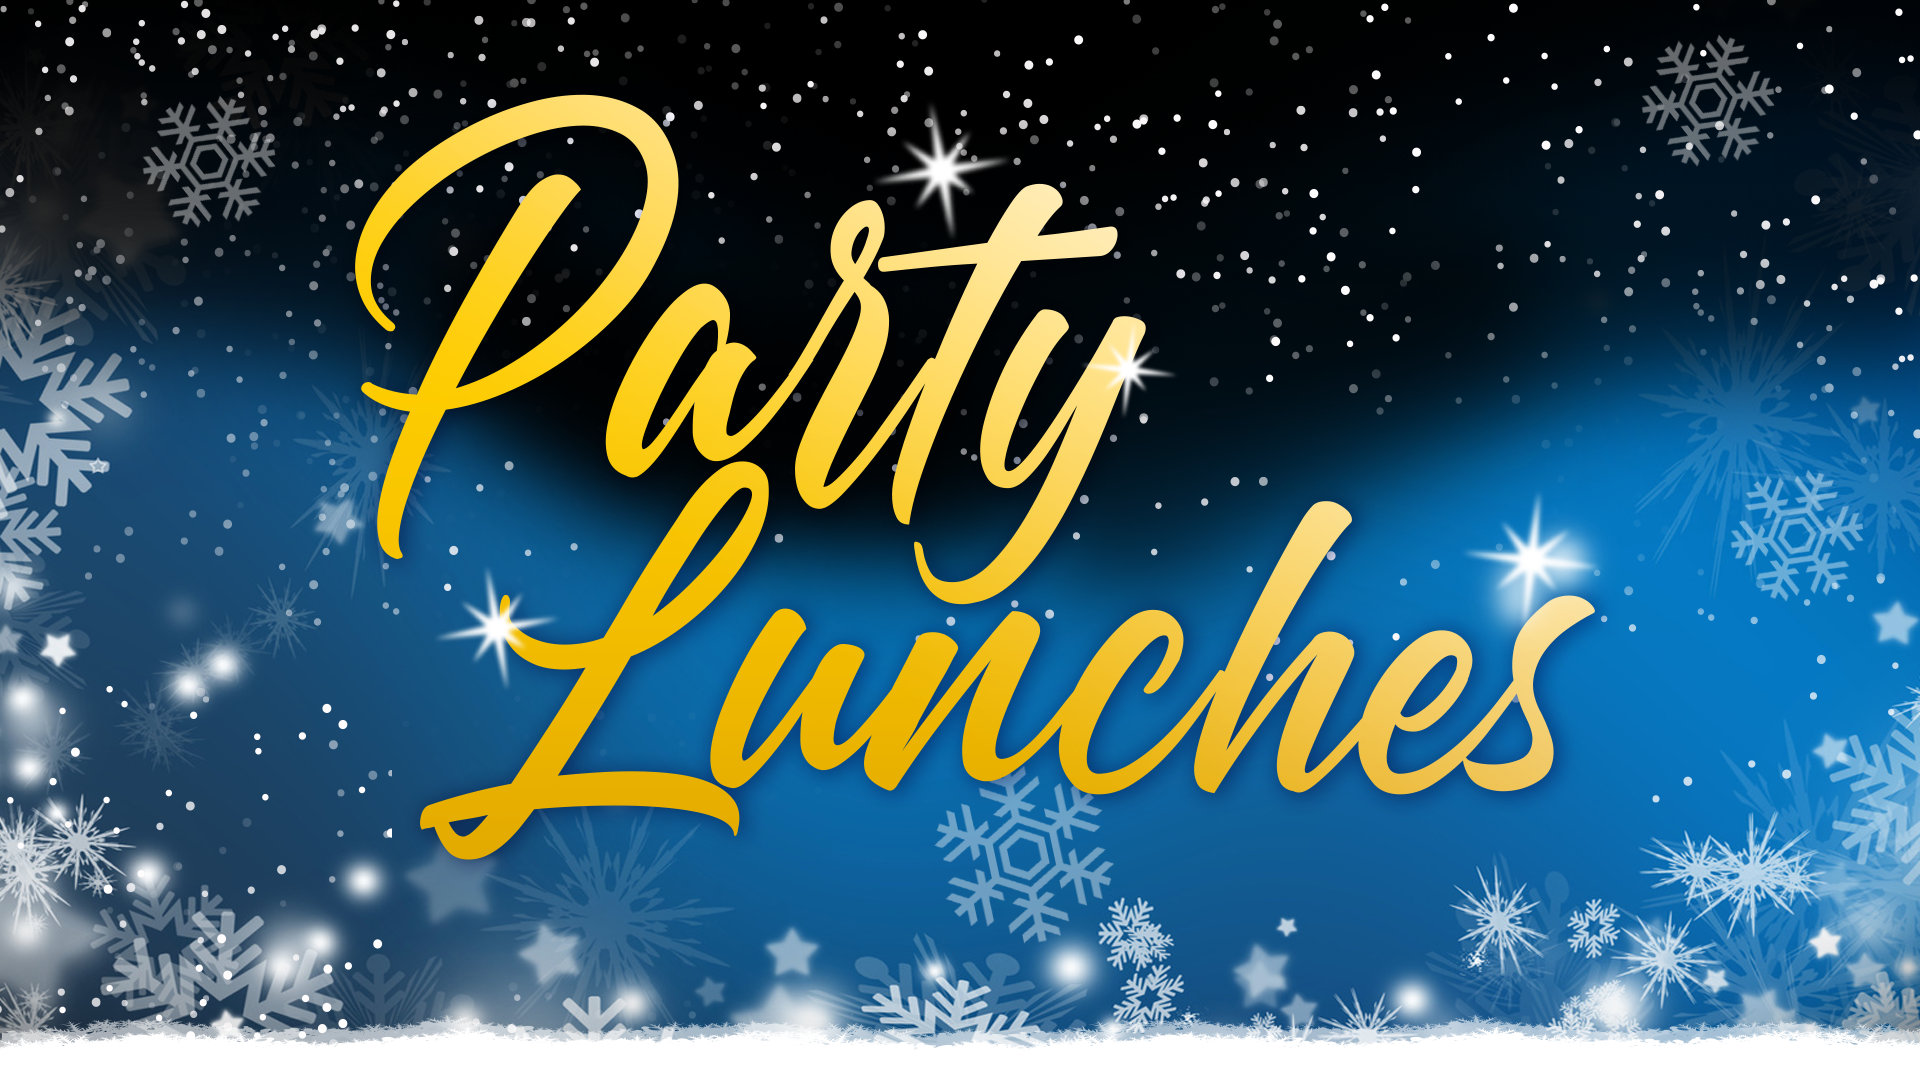 Christmas Party & Ladies Lunches are booking fast!